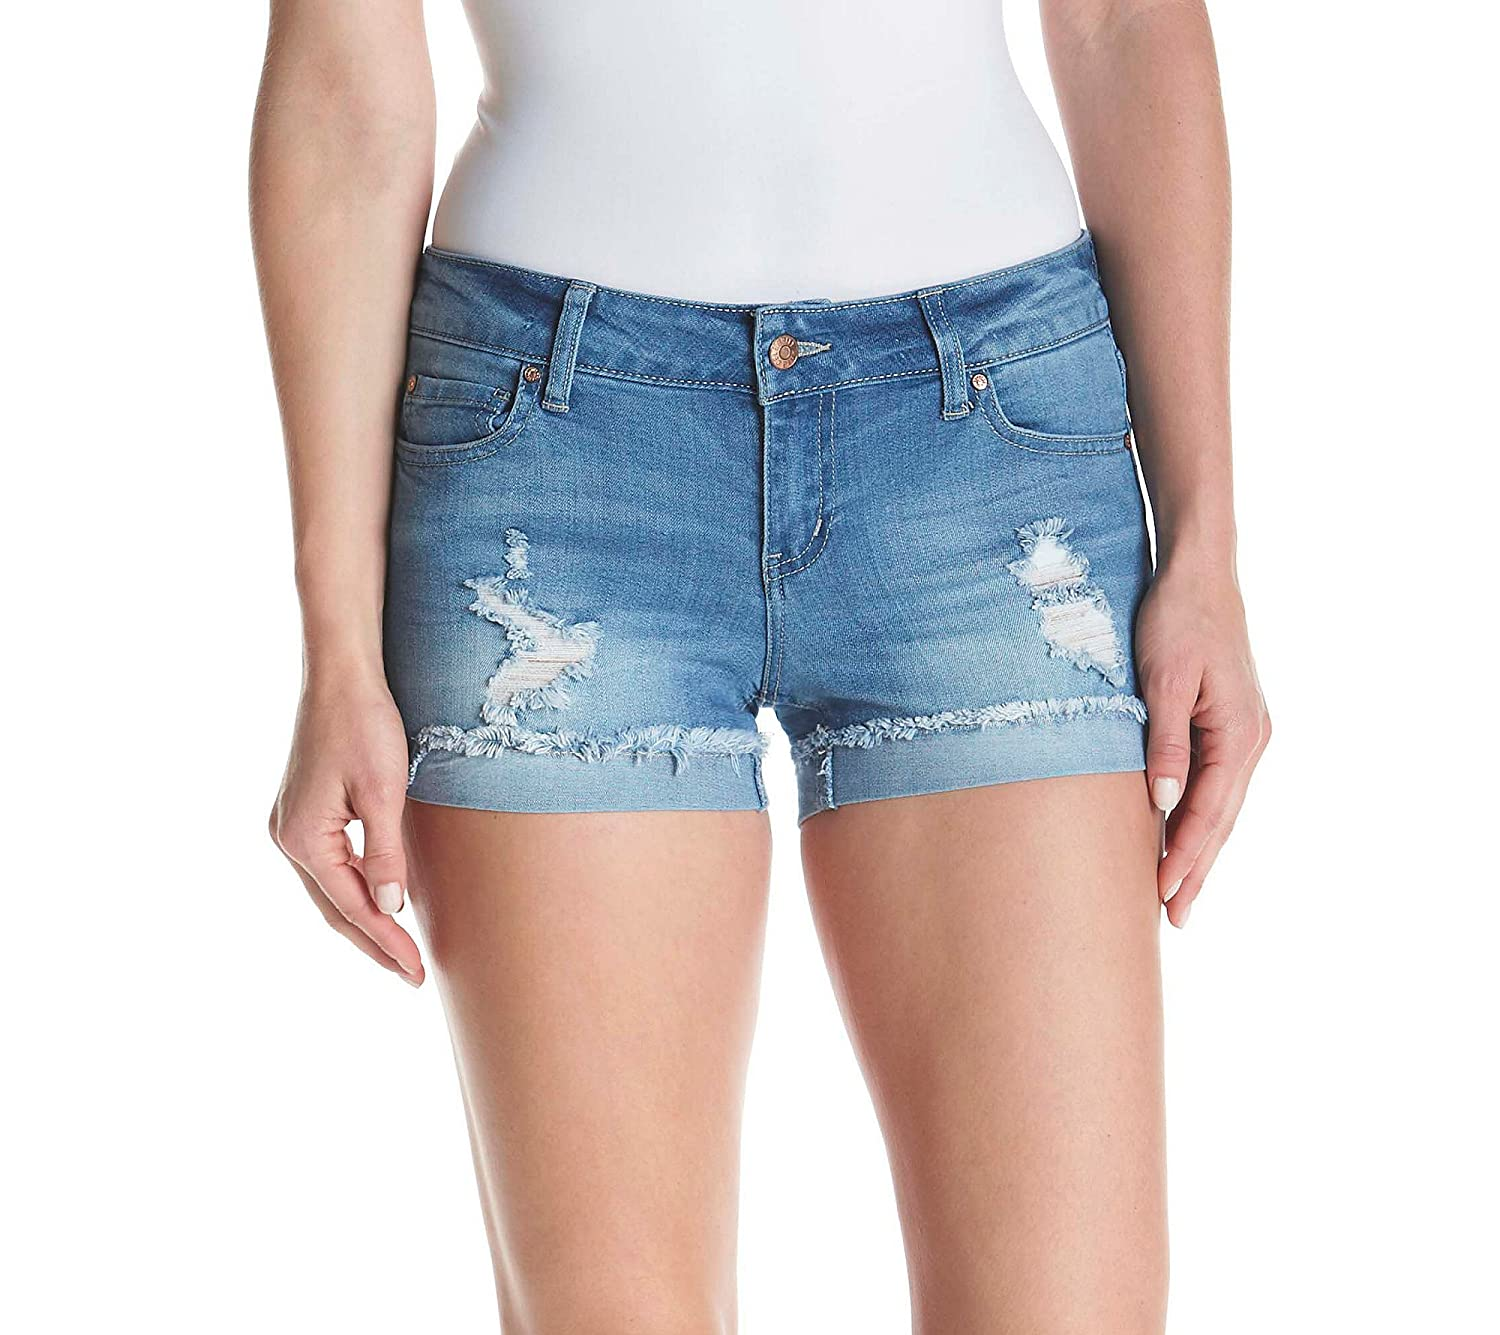 633c0c7c48fb 50%OFF Celebrity Pink Flip Fray Shorts - bennigans.com.mx